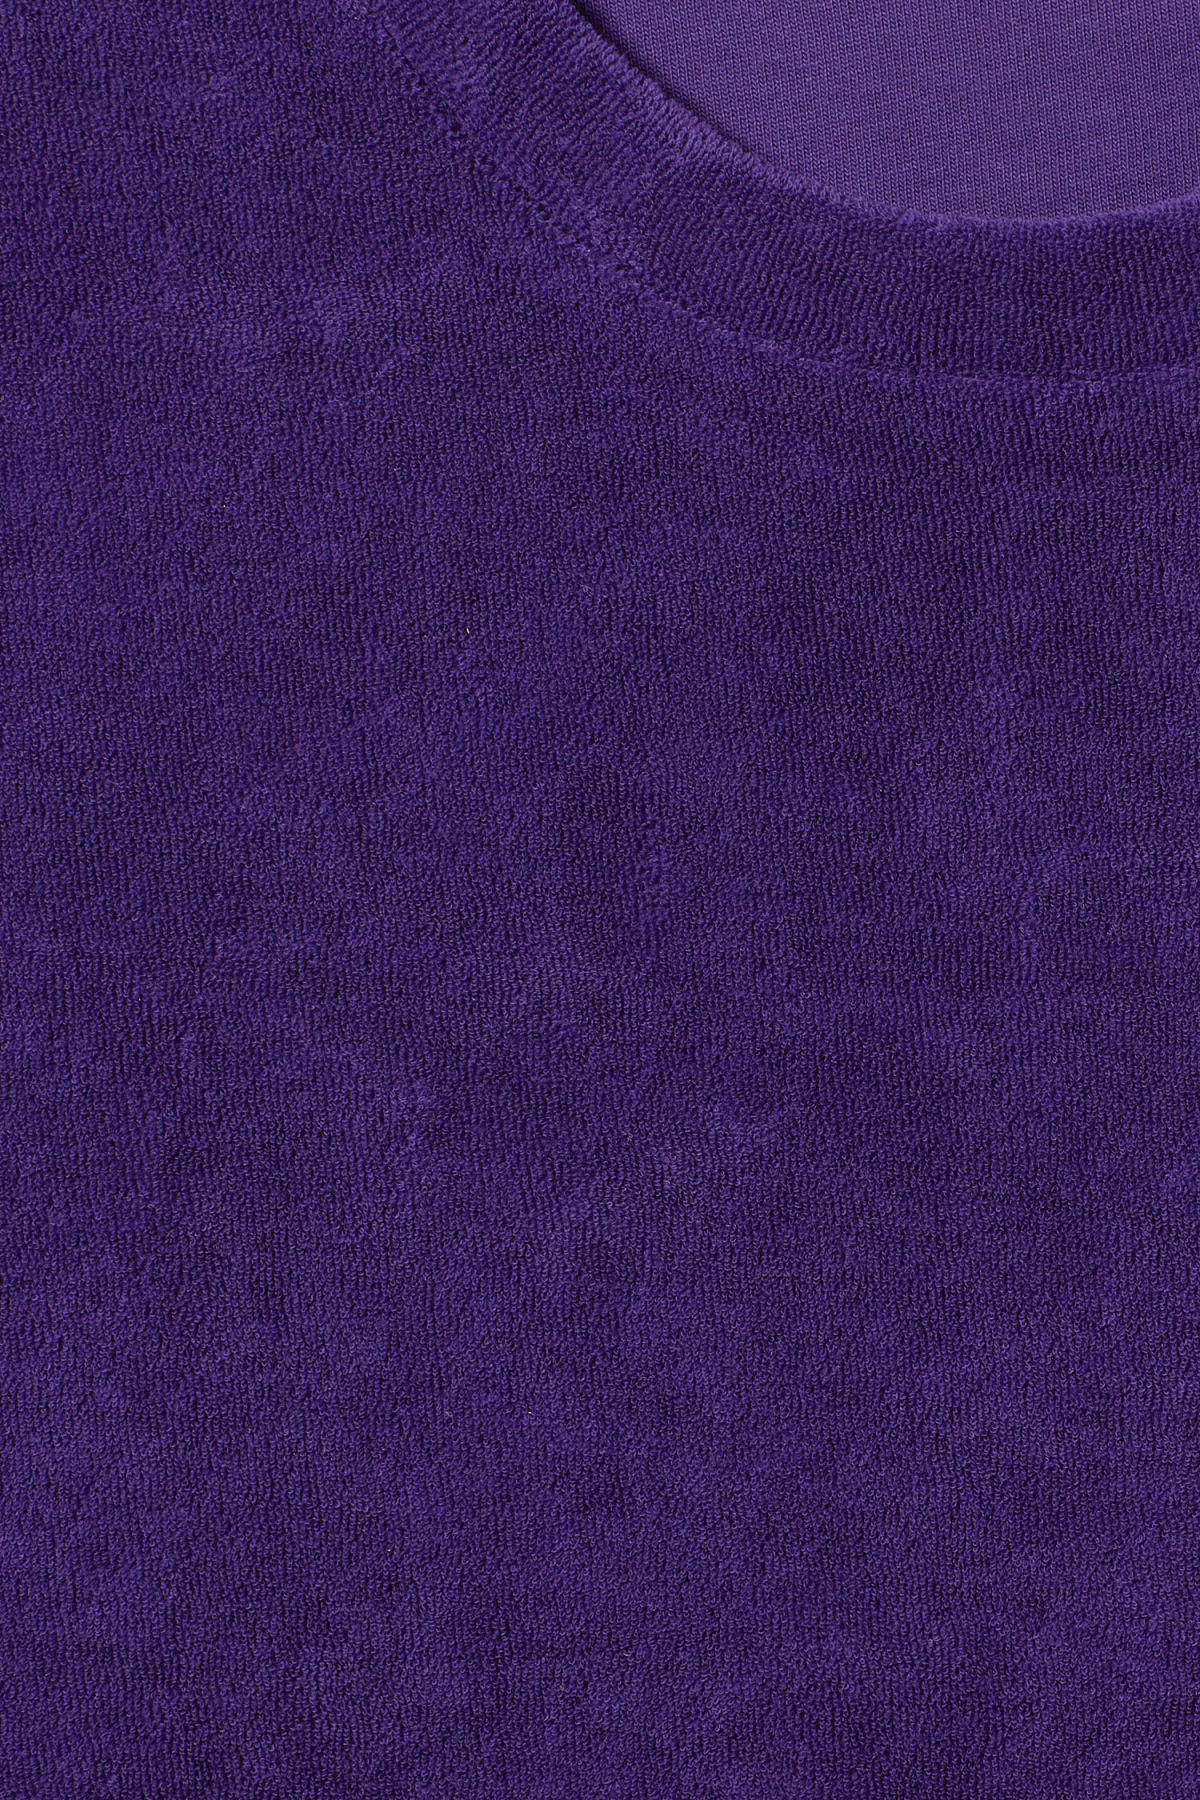 Detailed image of Weekday towel t-shirt in purple